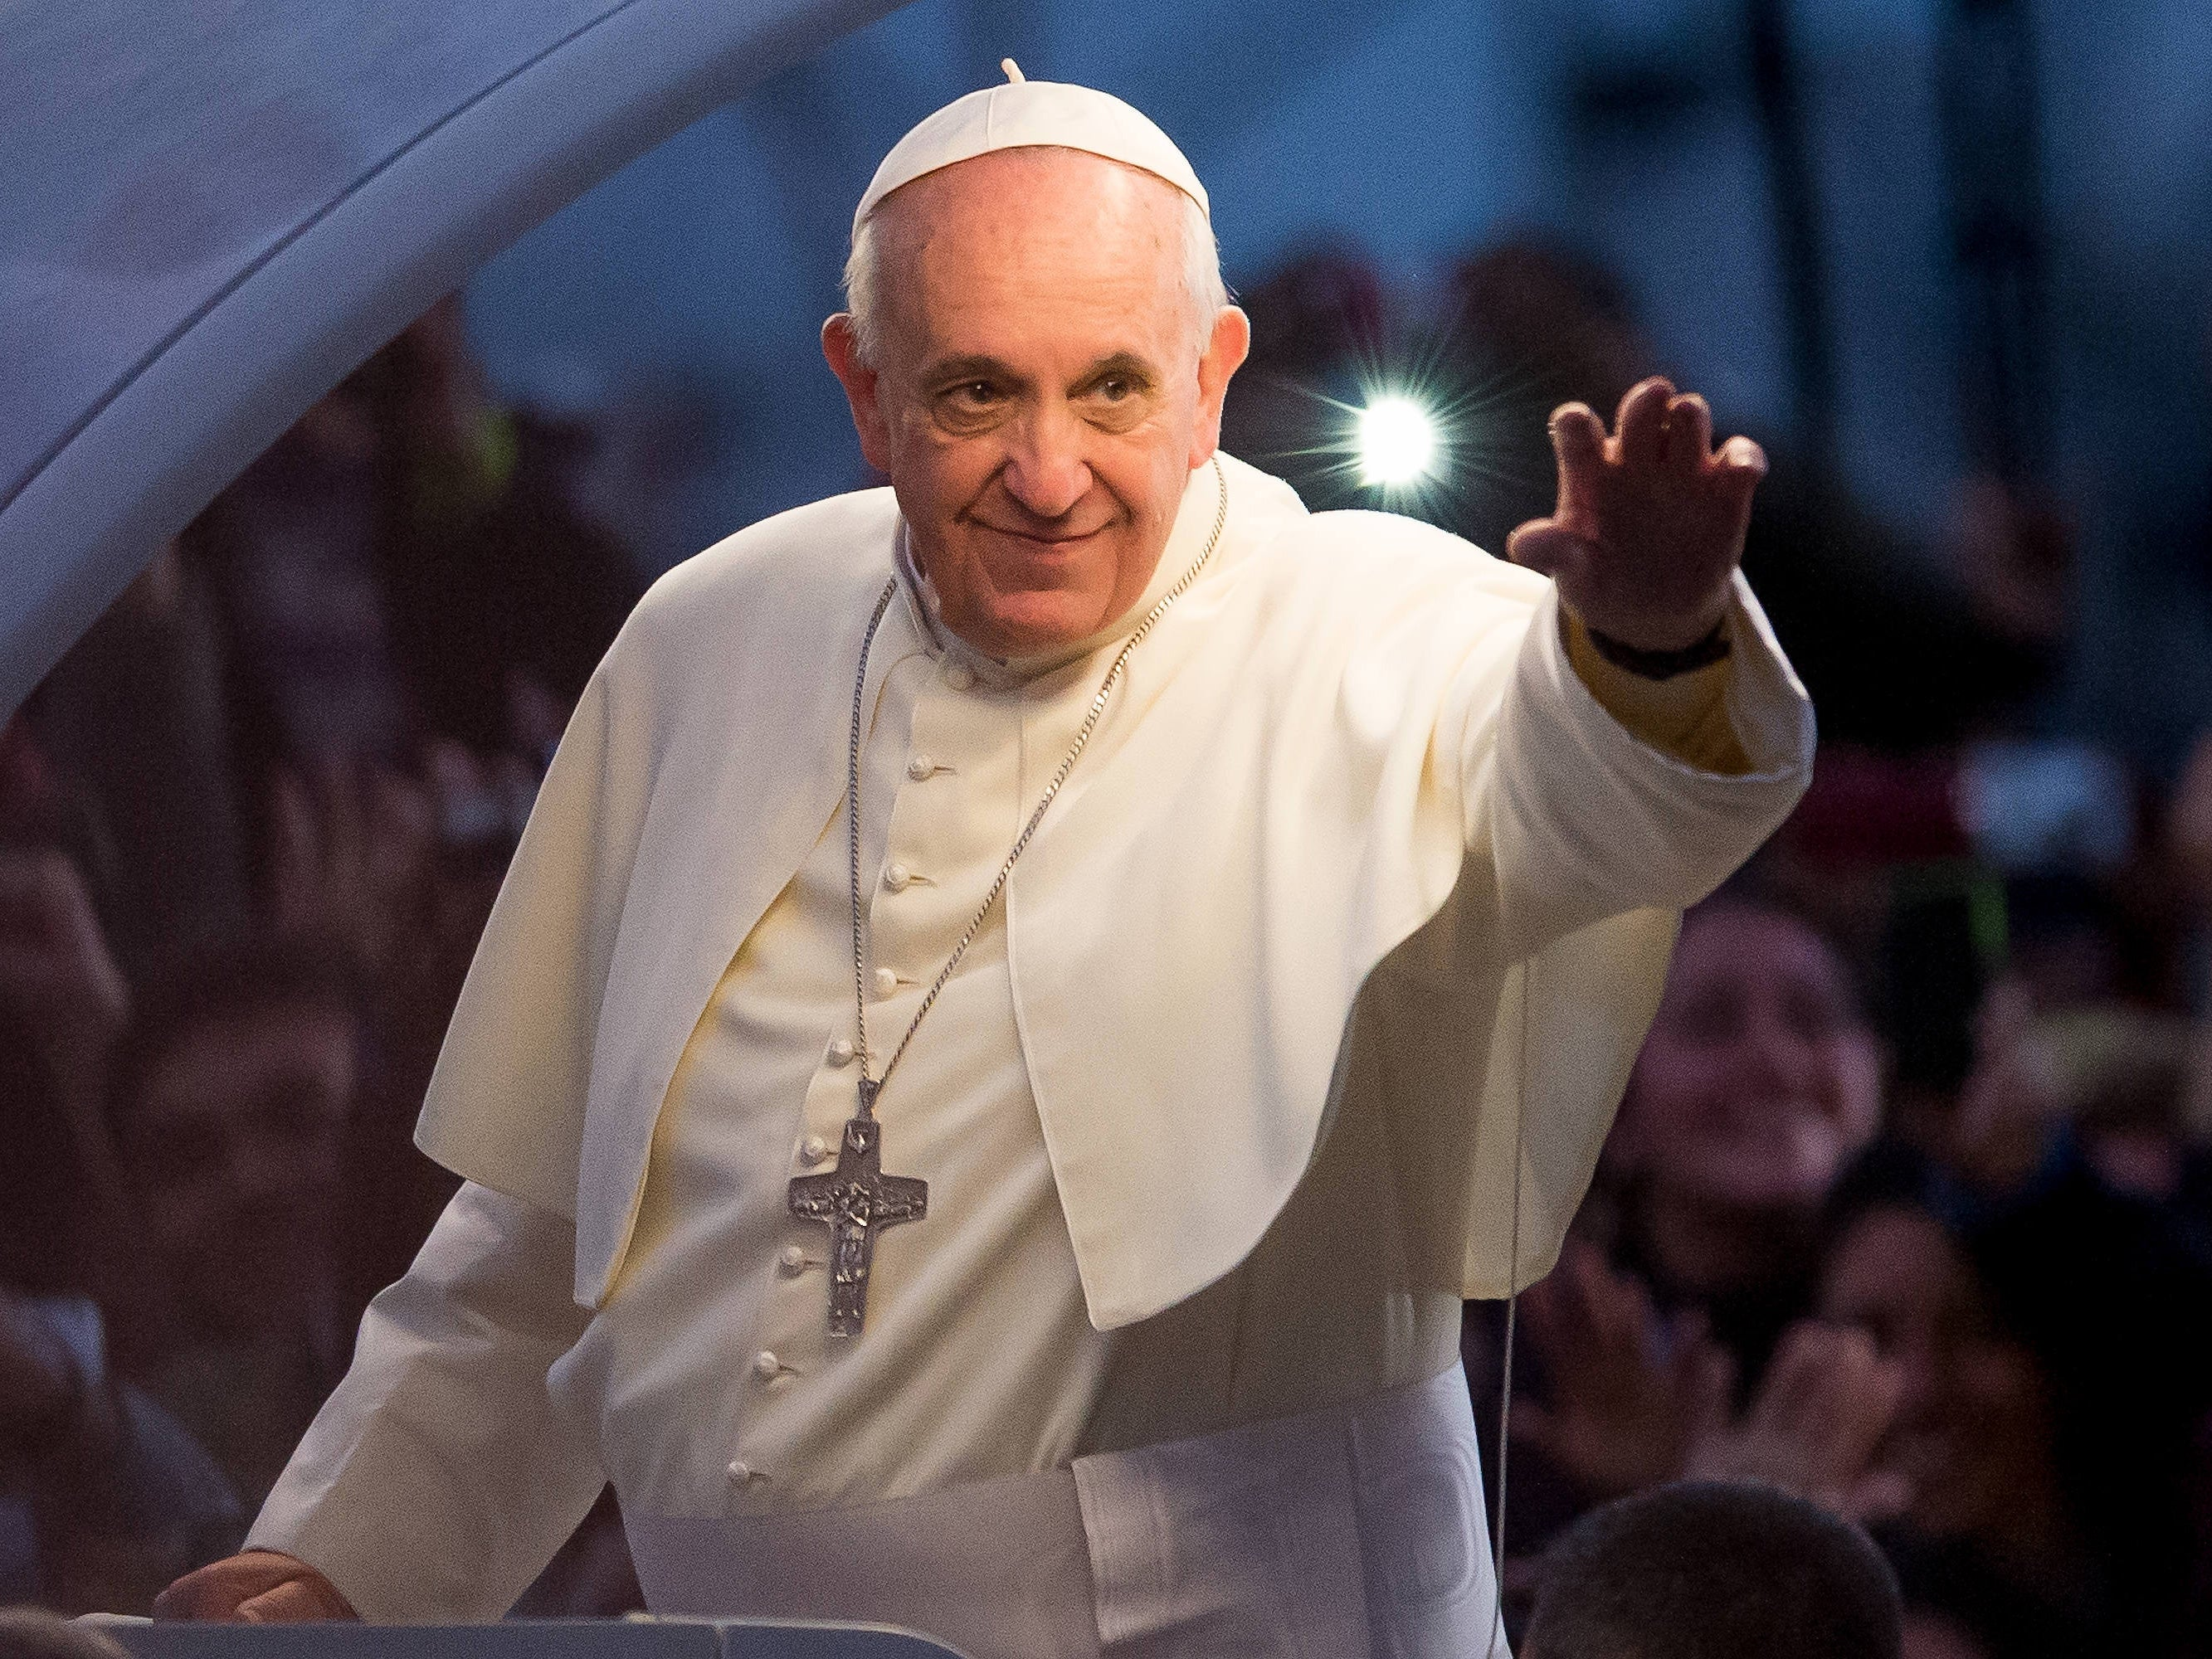 My divorced father was humiliated weekly in our Catholic church. The Pope's announcement could change that